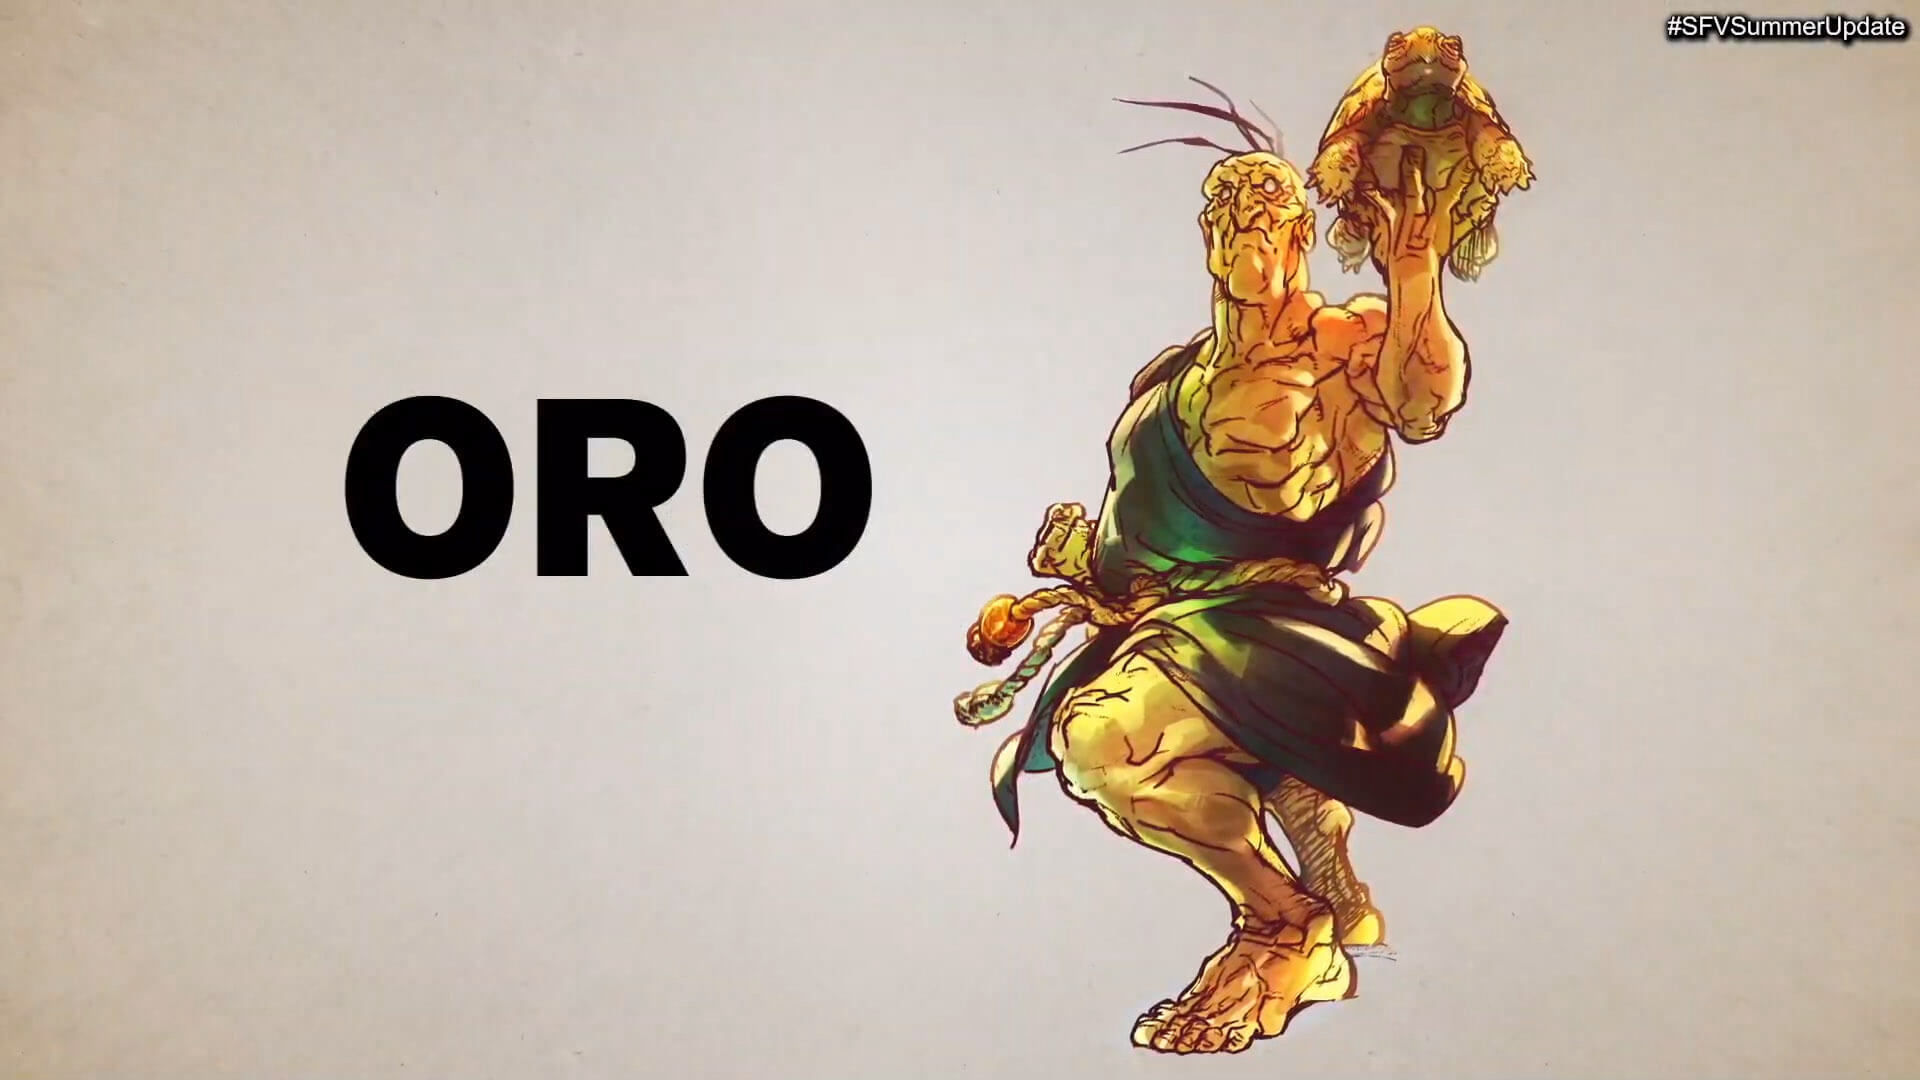 Capcom Released a New Sketch of Oro